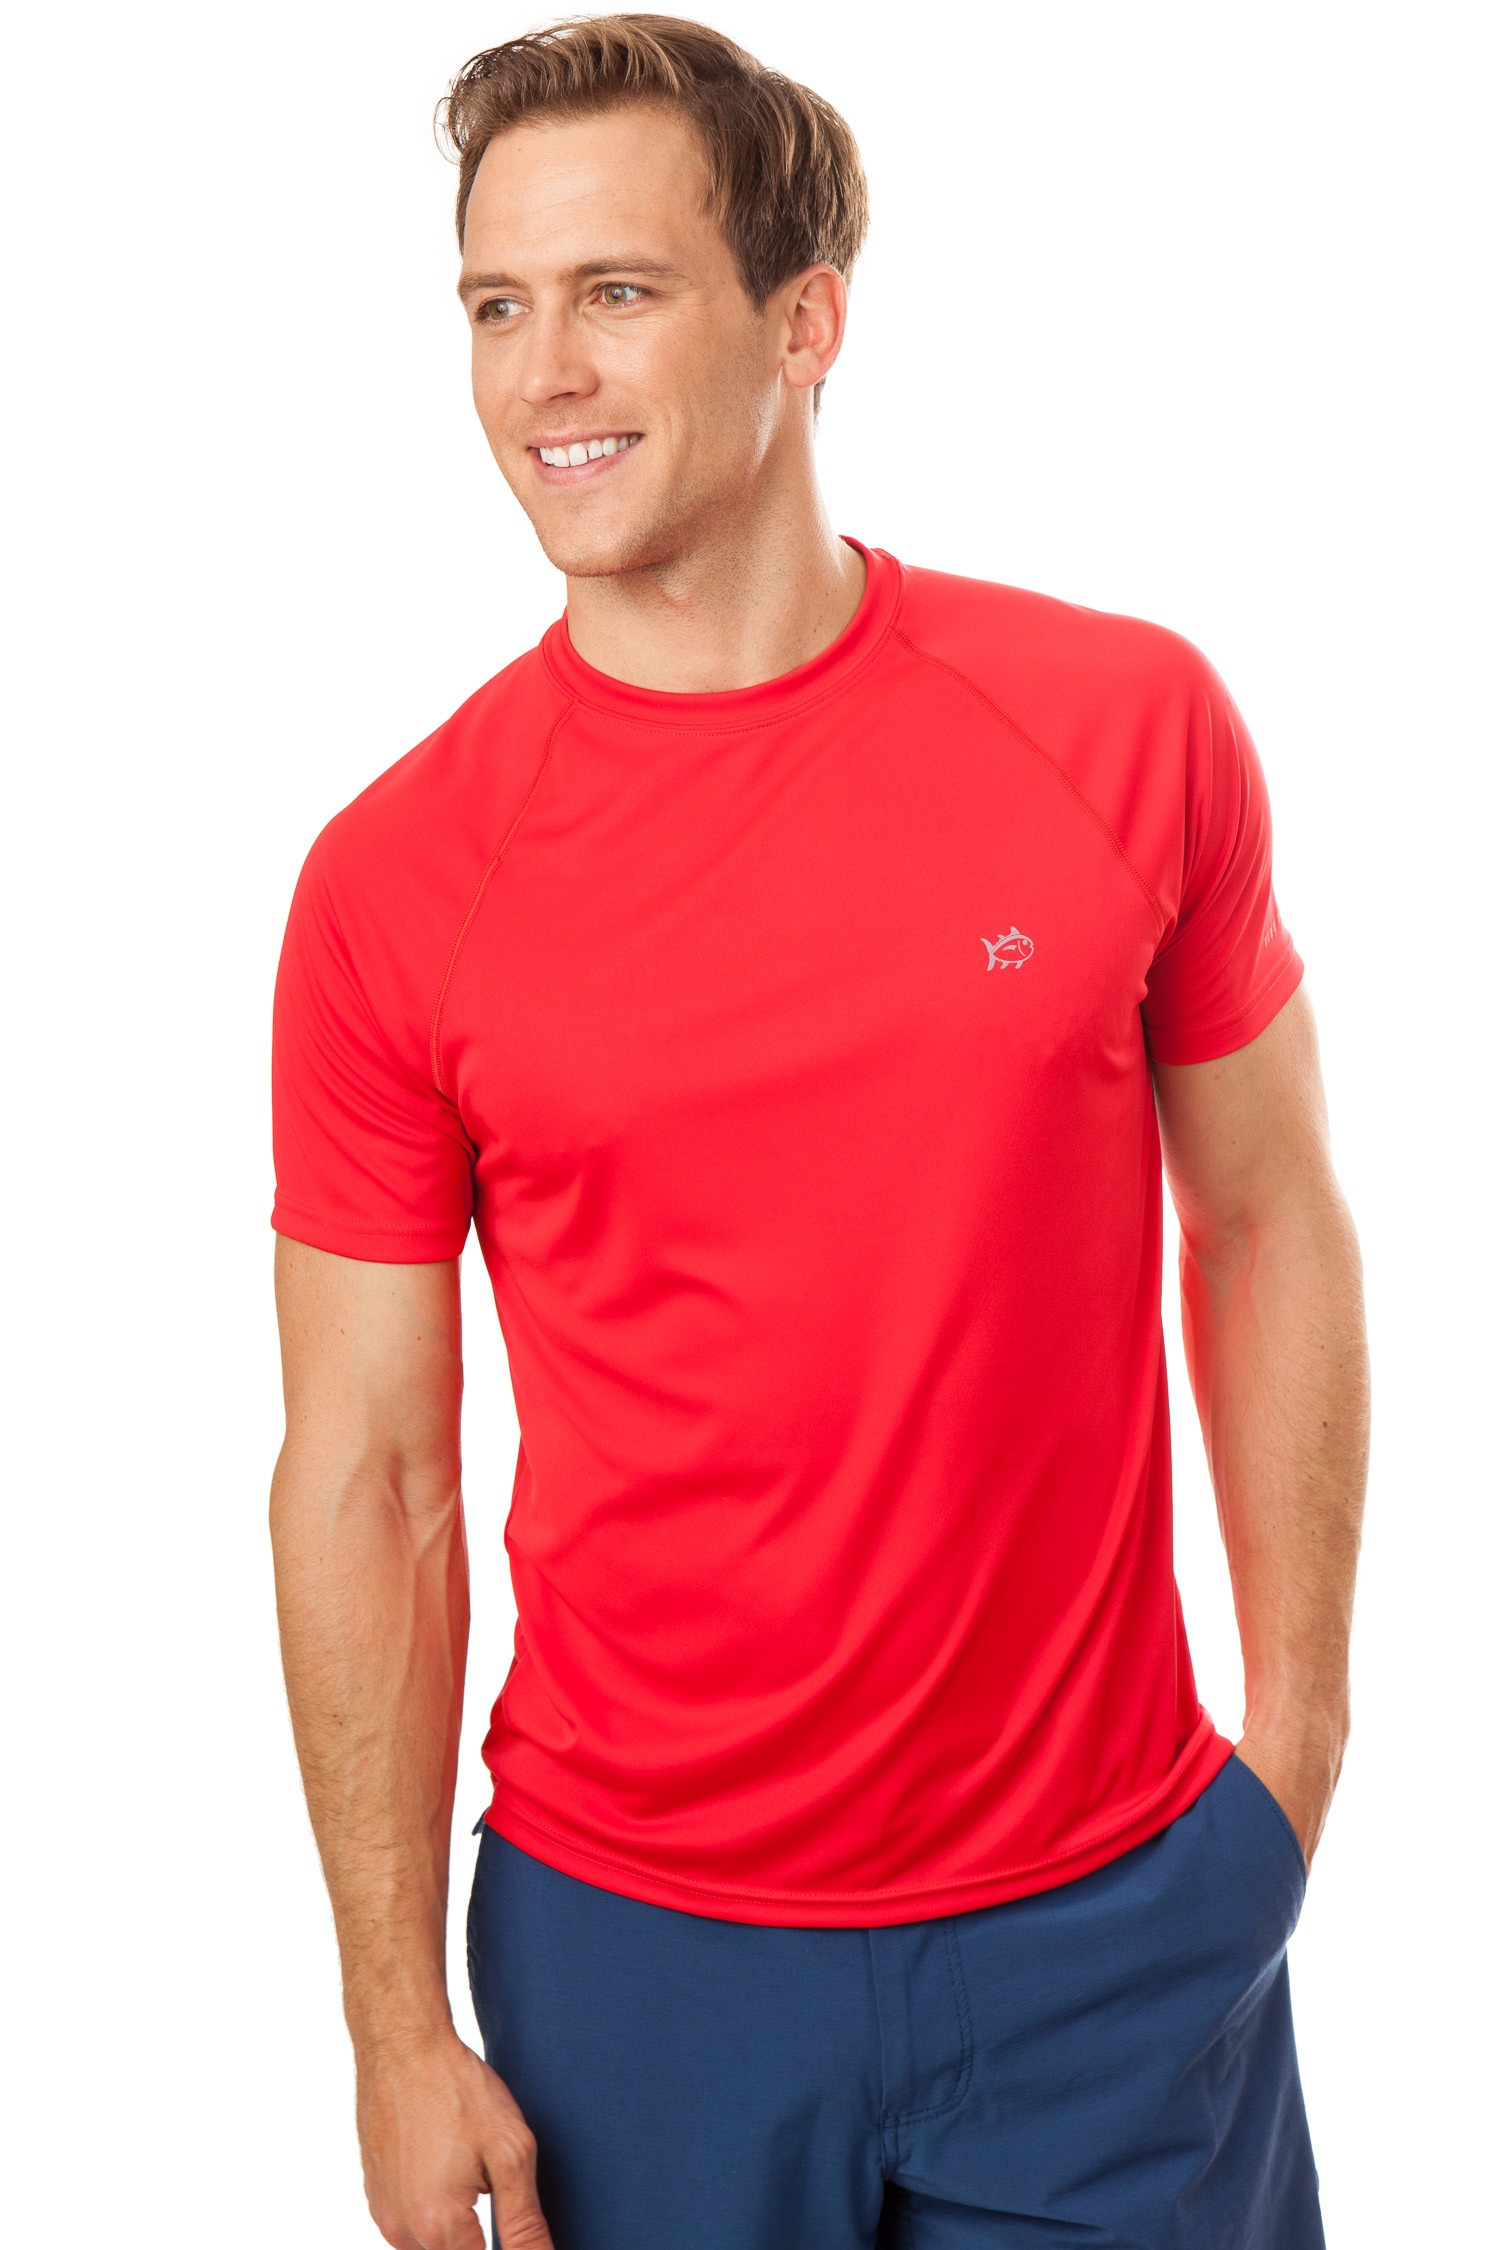 Tide to Trail Performance T-Shirt - Southern Tide Apparel at Cahill & Swain